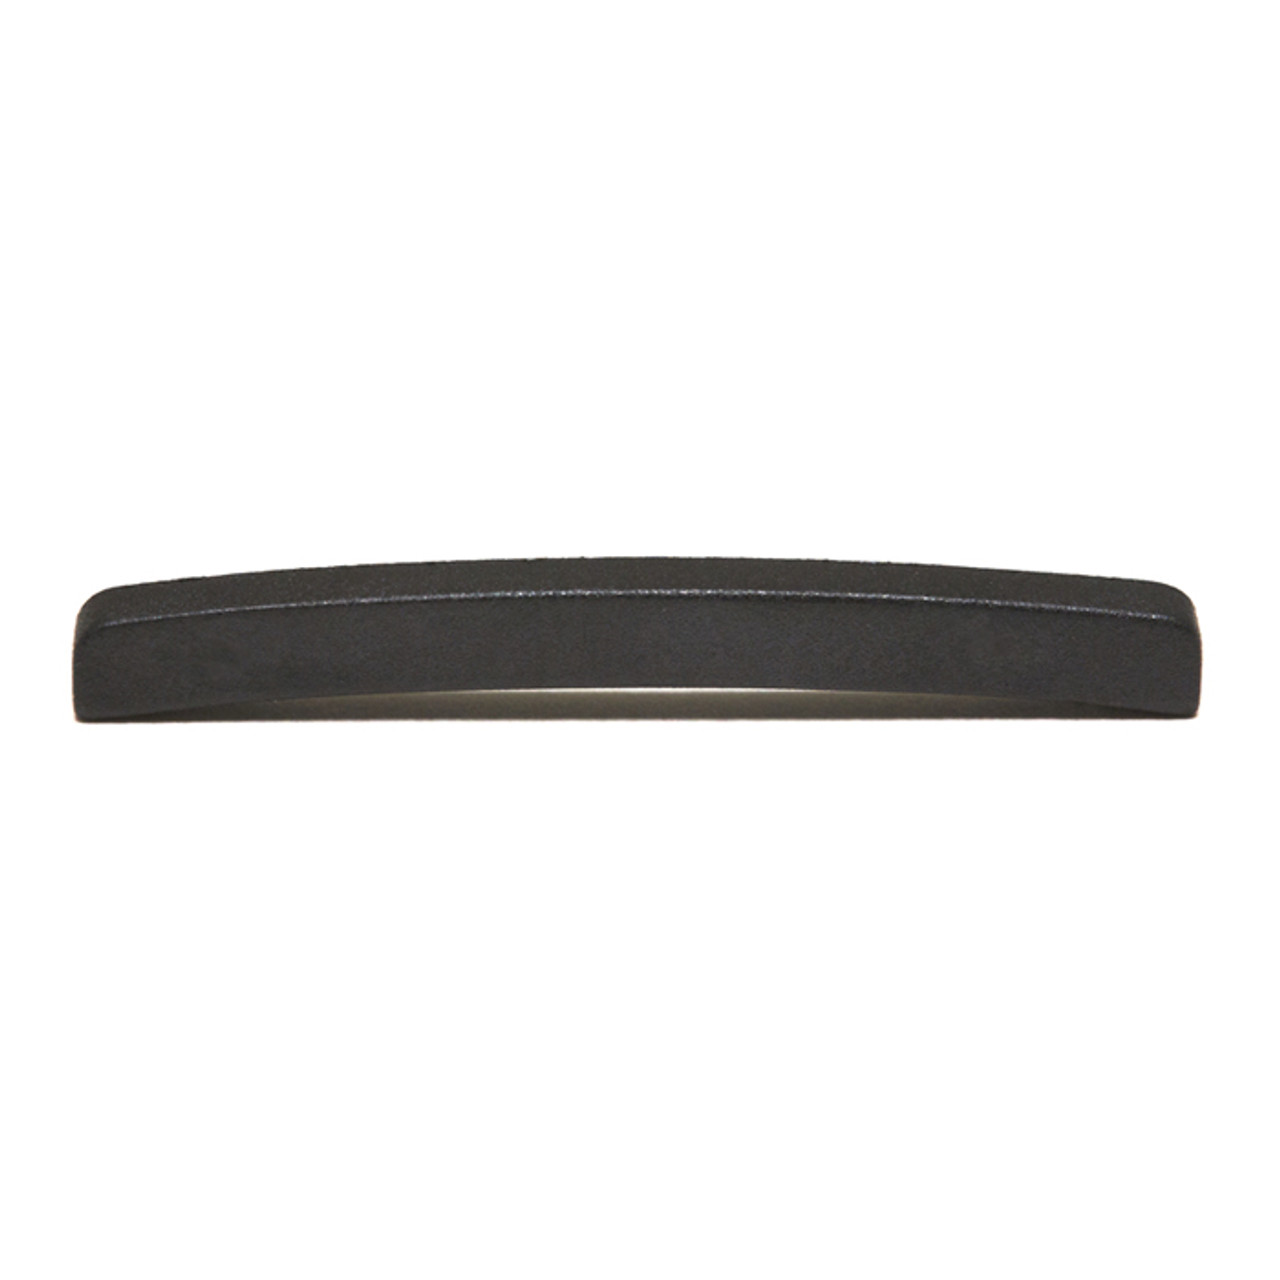 Graph Tech Black TUSQ XL Curved Fender Nut Blank PT-1000-00 View B